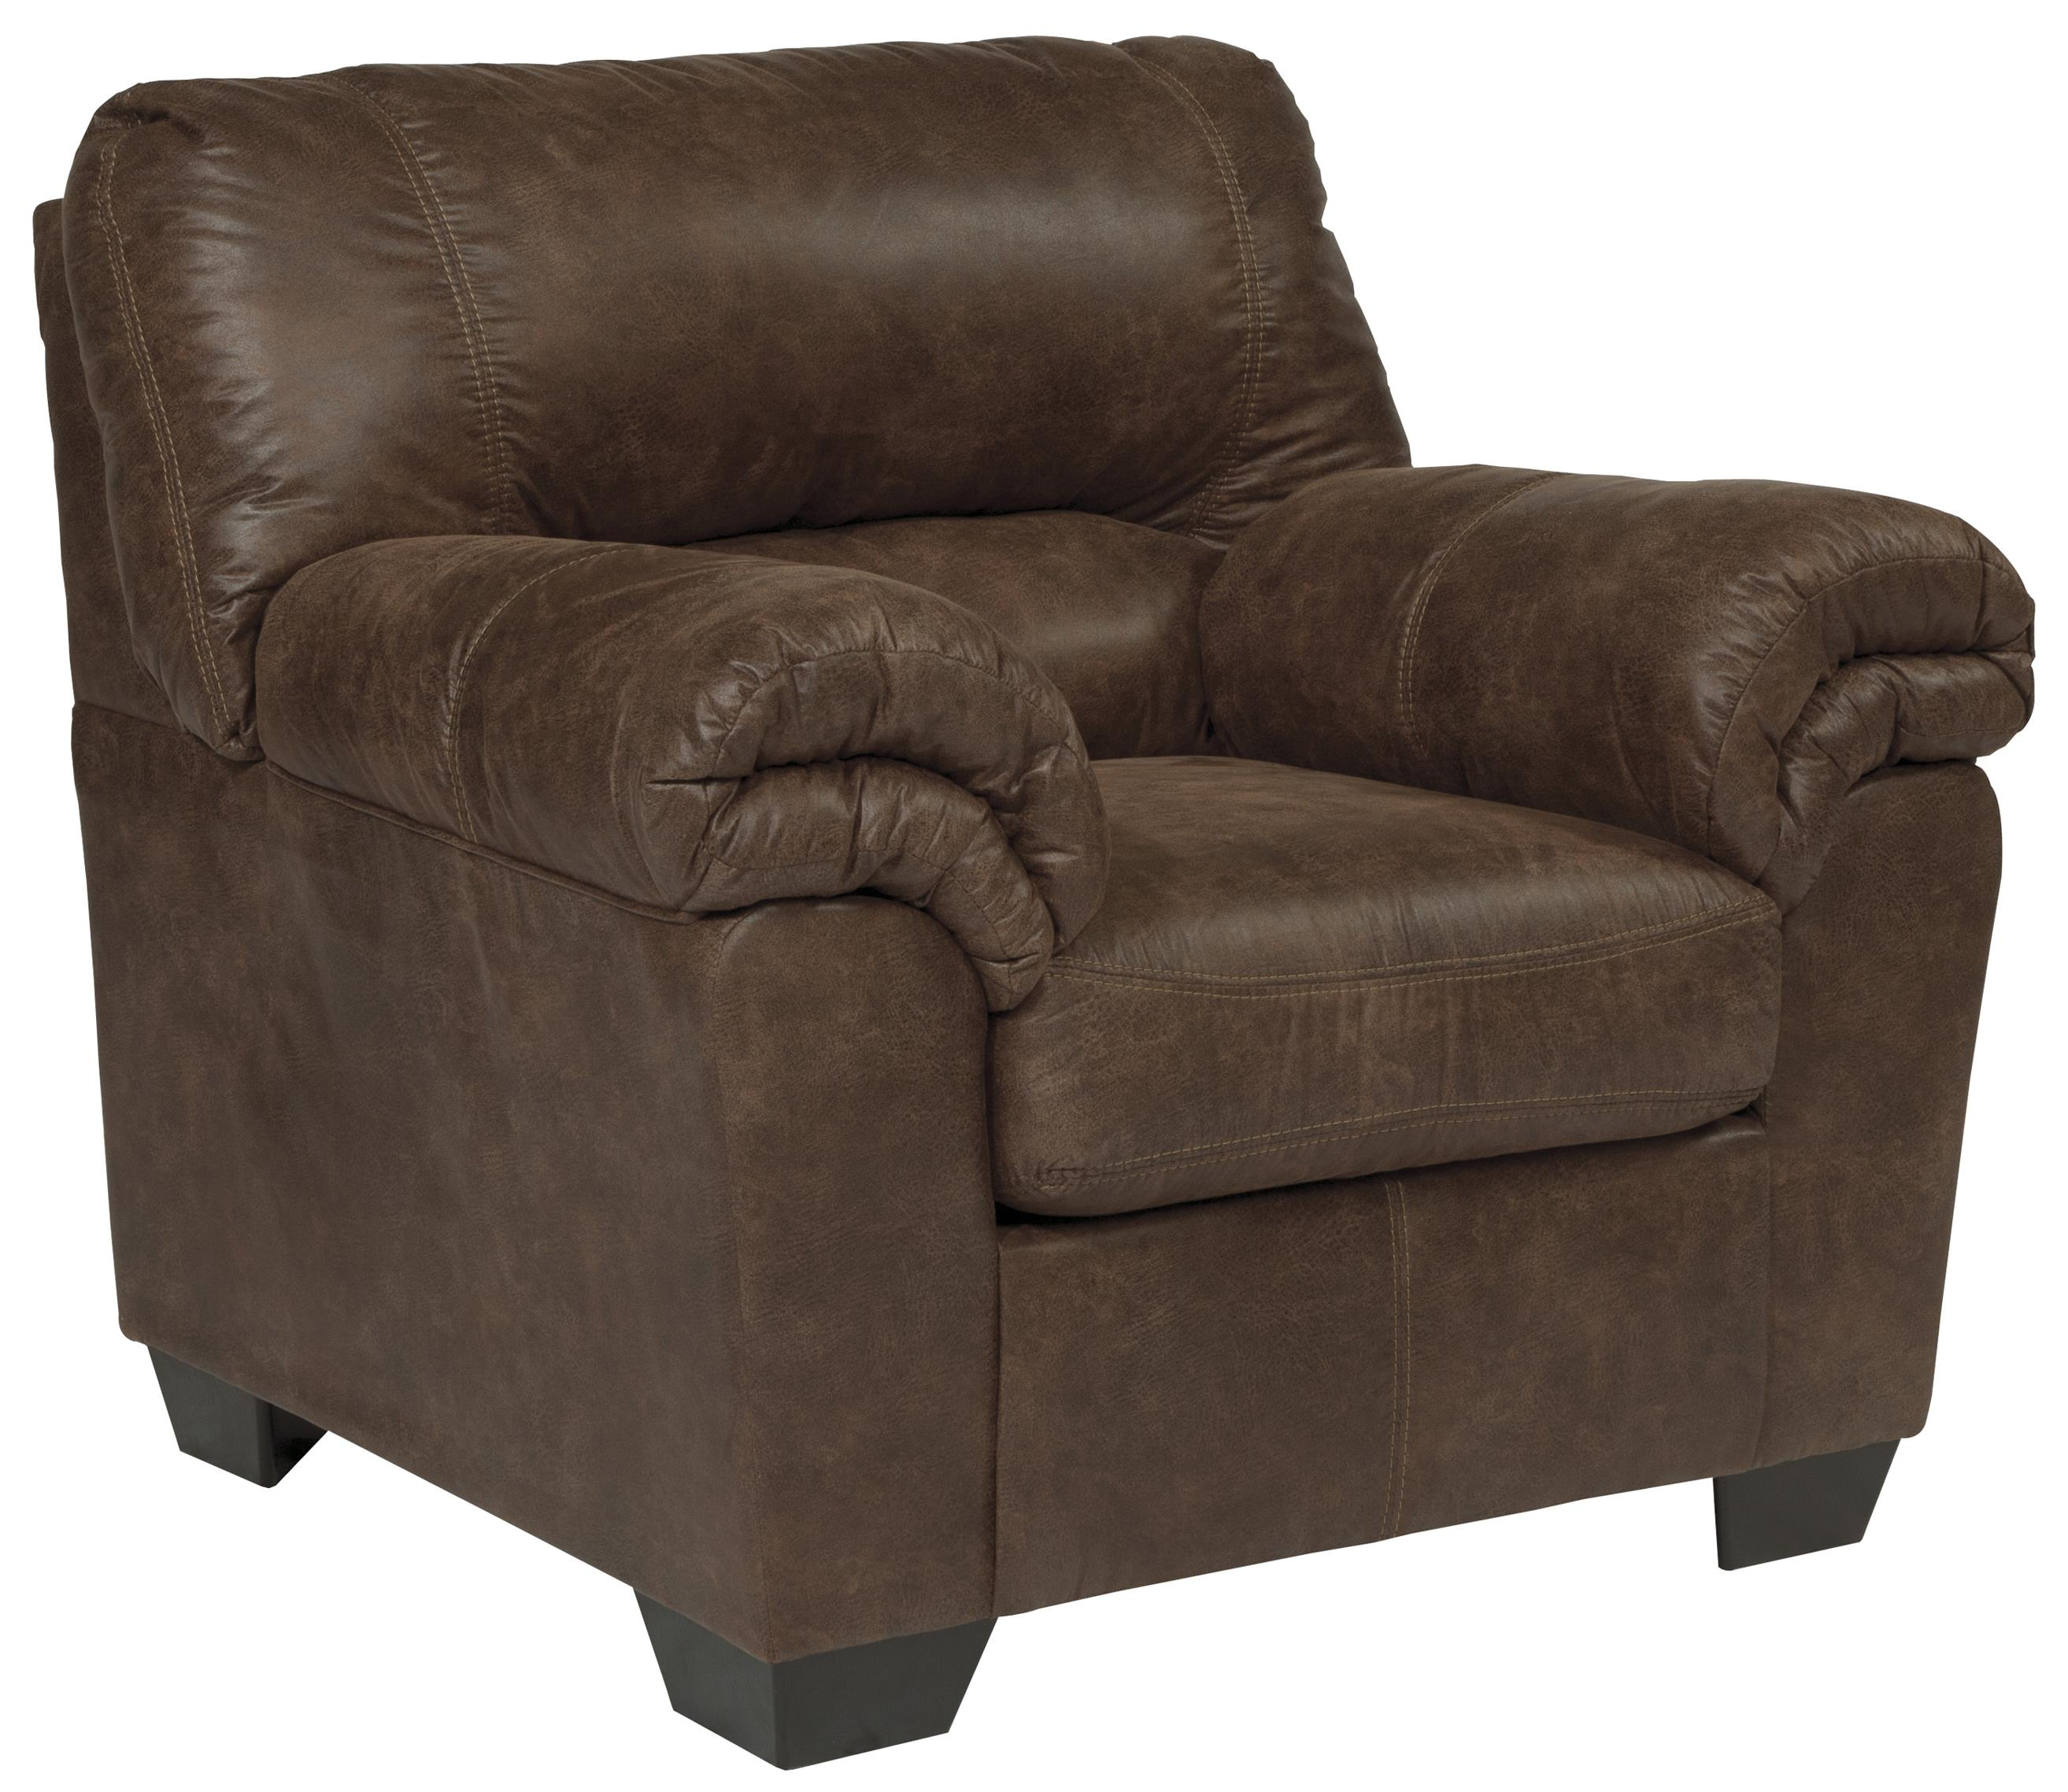 Casual Faux Leather Chair By Signature Design By Ashley